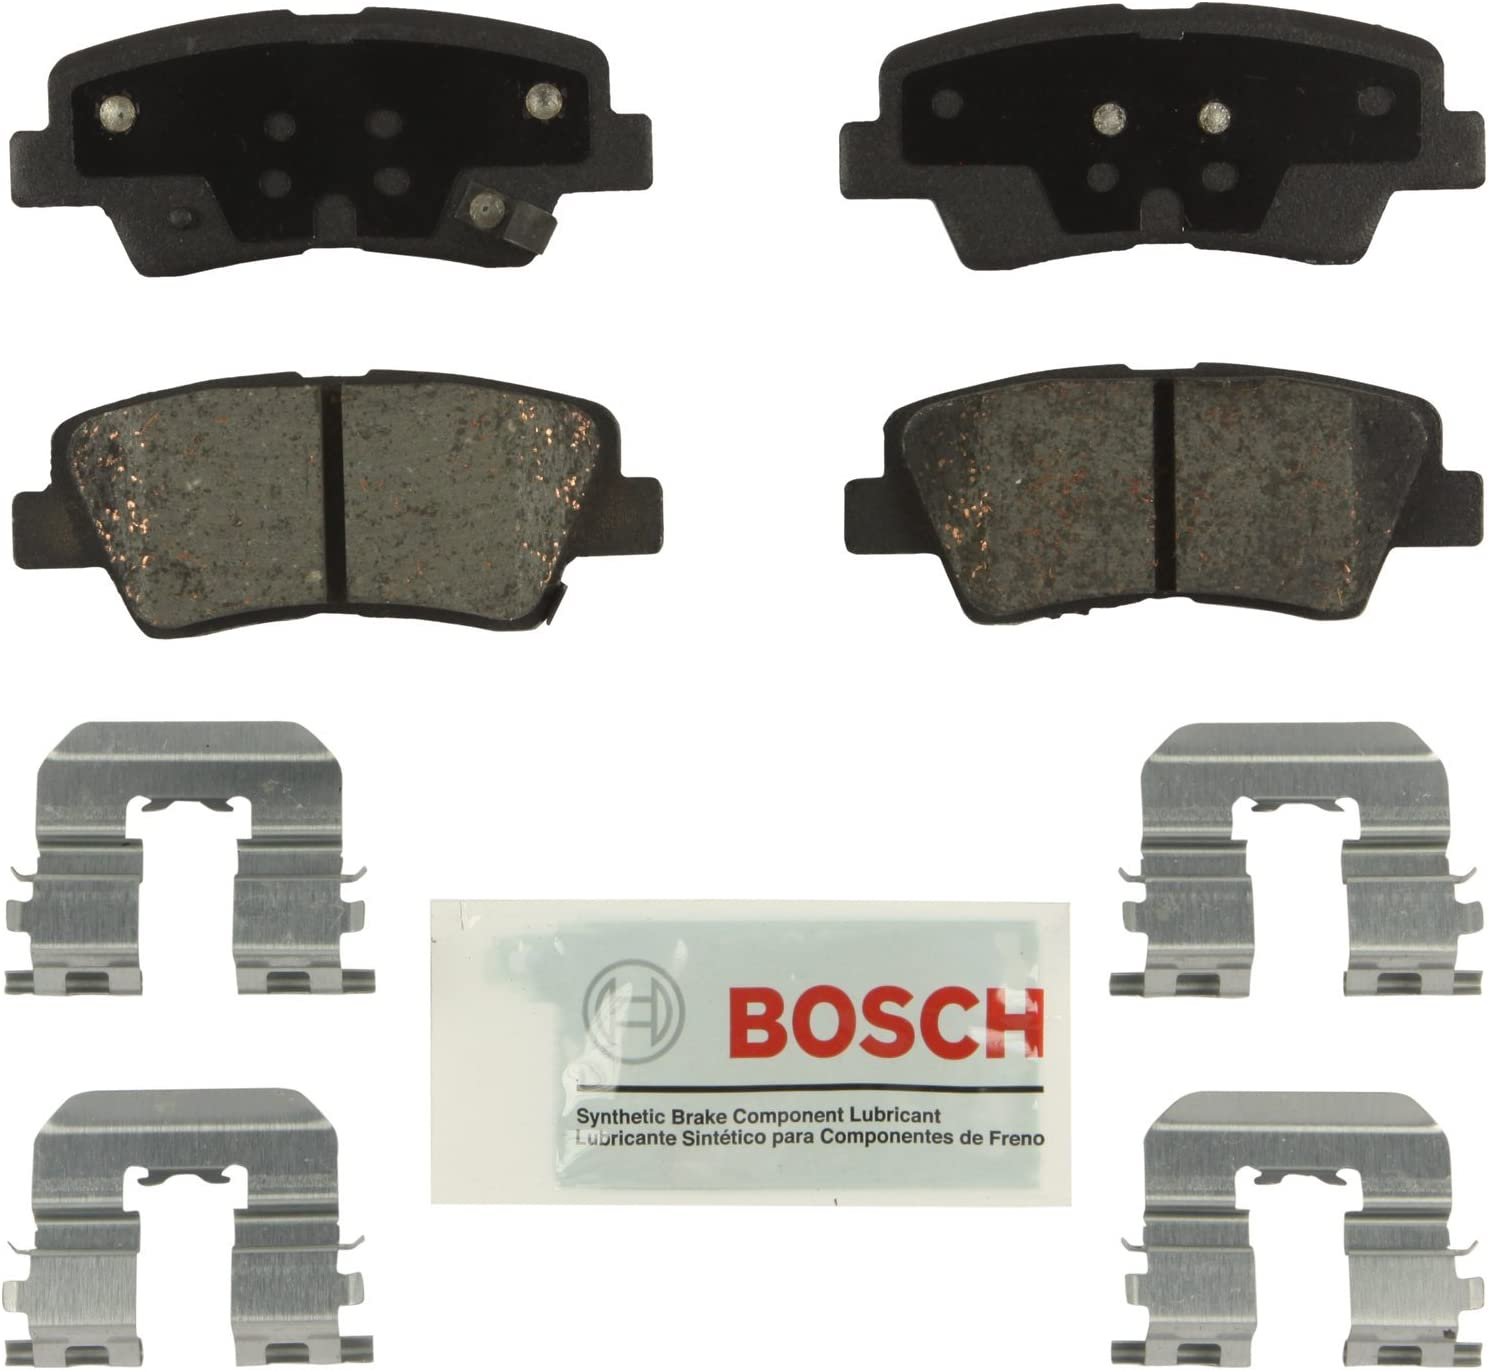 GMC Chevrolet FRONT Bosch BE924H Blue Disc Brake Pad Set with Hardware for Select Buick and Saab Cars and SUVs Hyundai Kia Cadillac